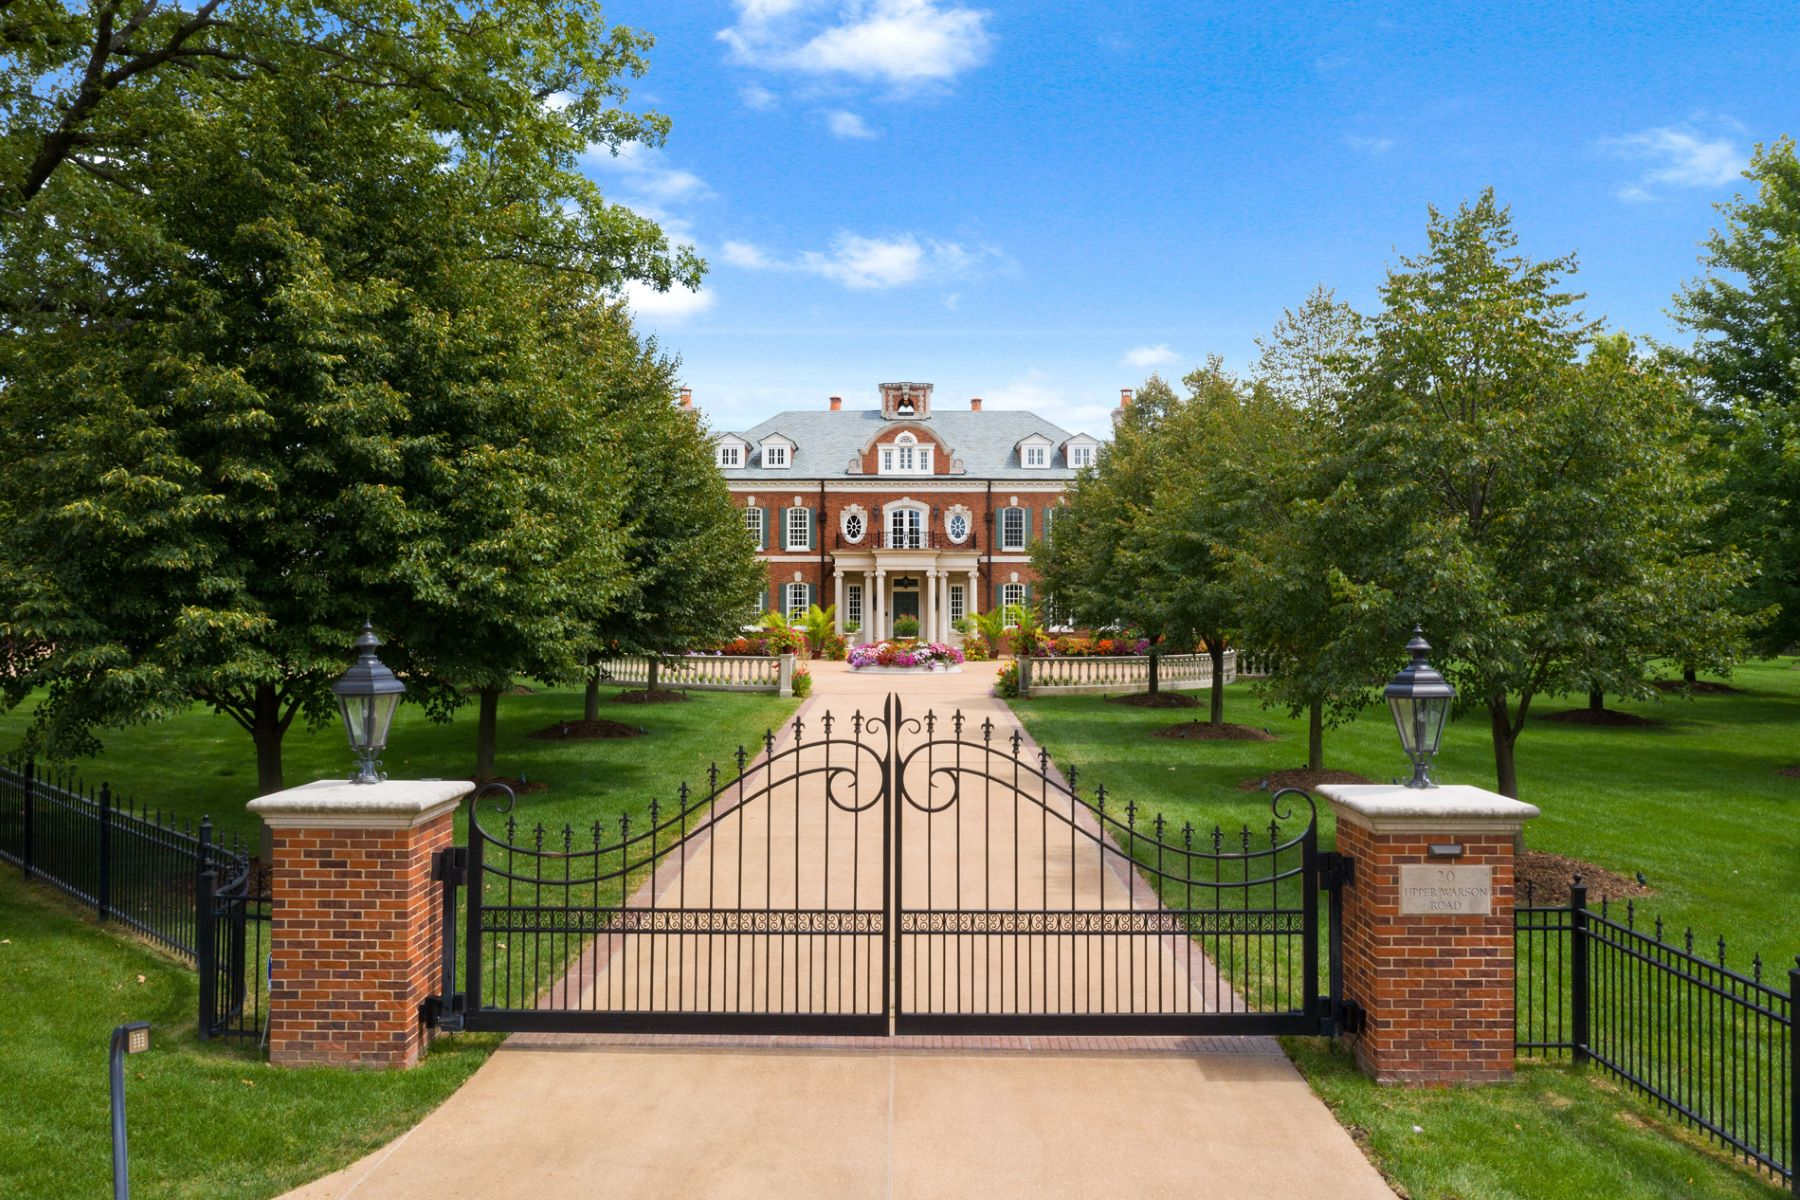 Single Family Homes для того Продажа на The Westbury Estate: A Legacy Property in the Heart of Ladue 20 Upper Warson Road Ladue, Миссури 63124 Соединенные Штаты